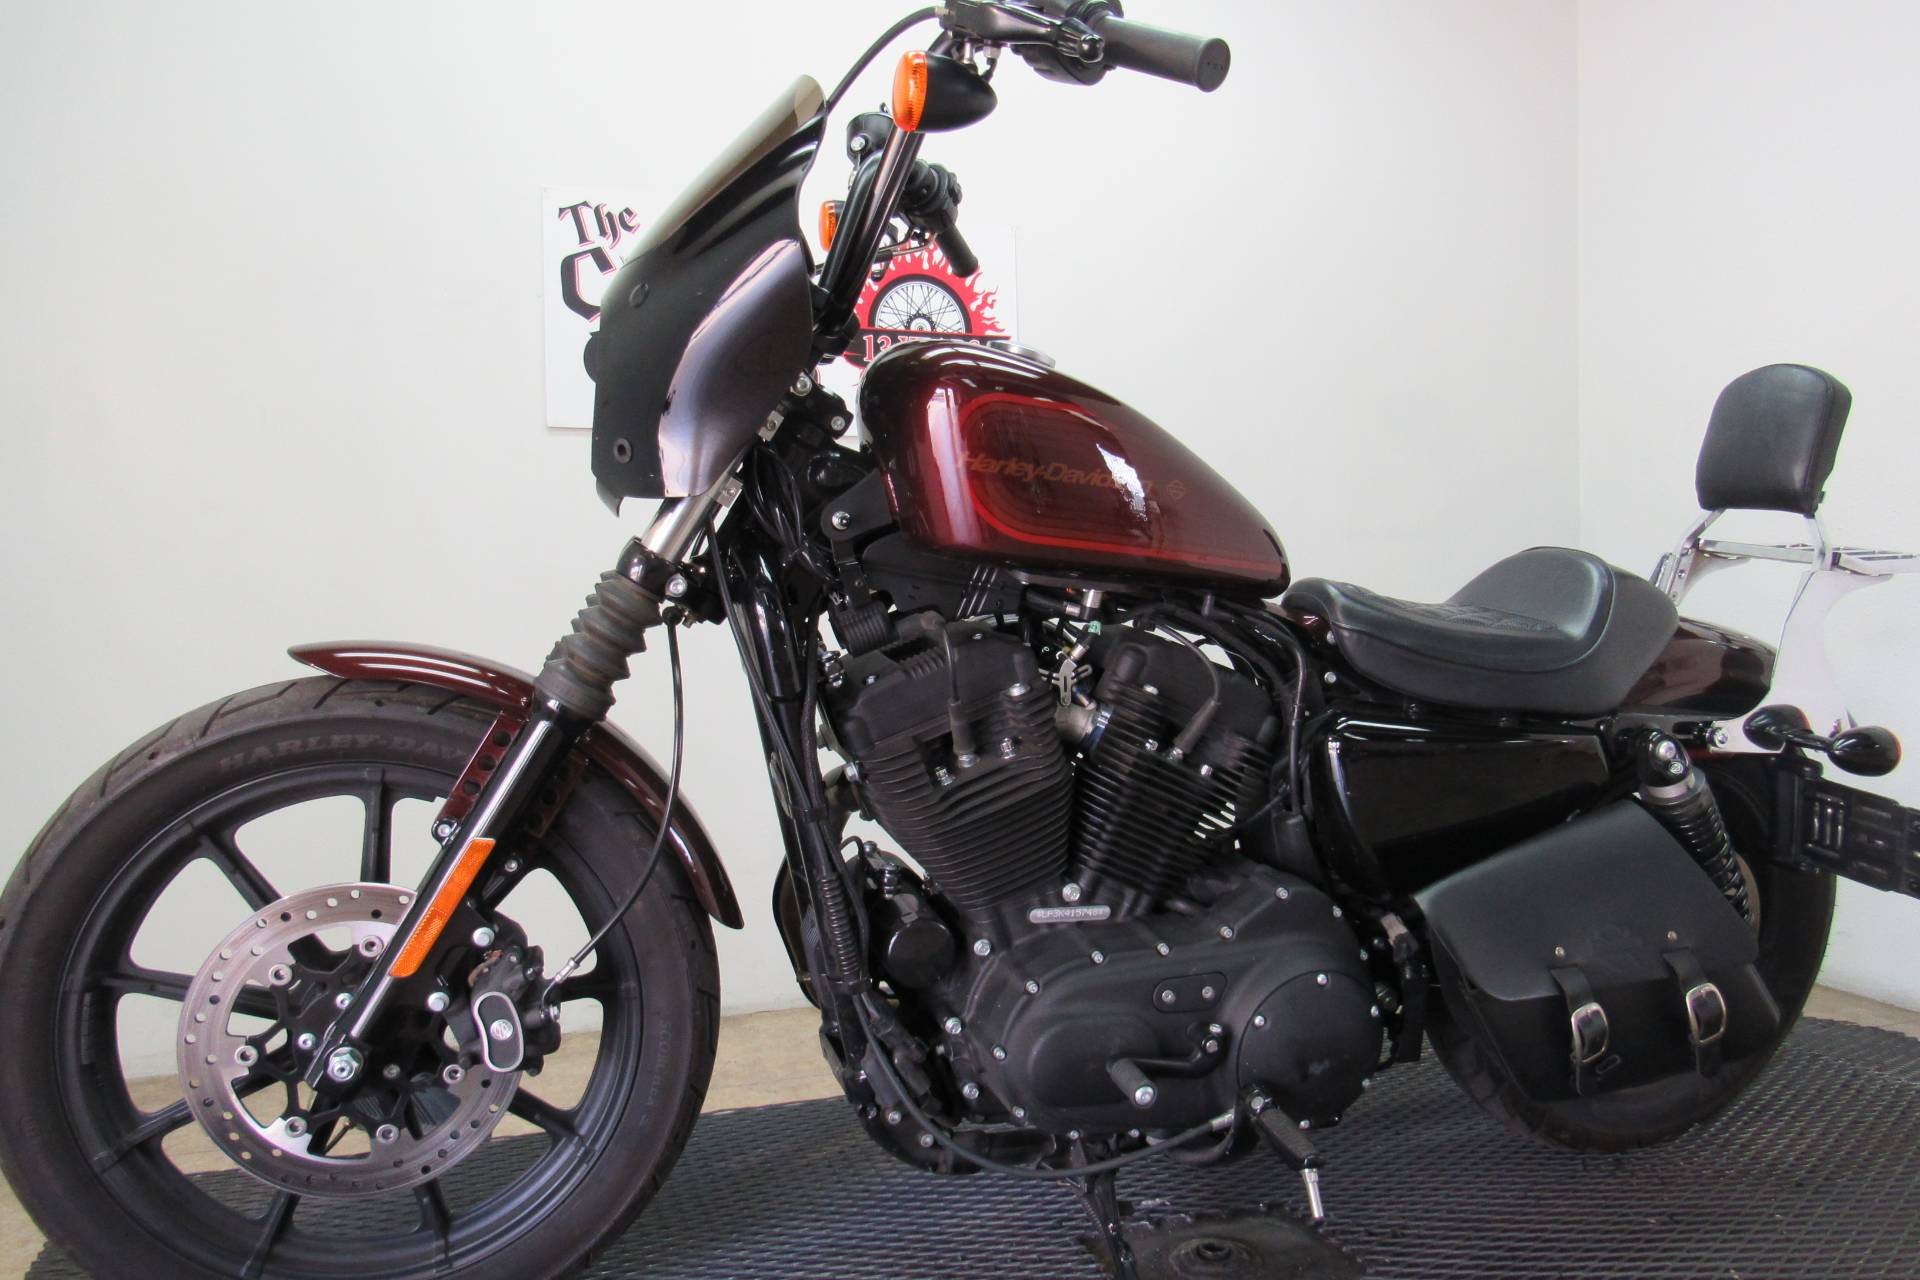 2019 Harley-Davidson IRON 1200 in Temecula, California - Photo 4